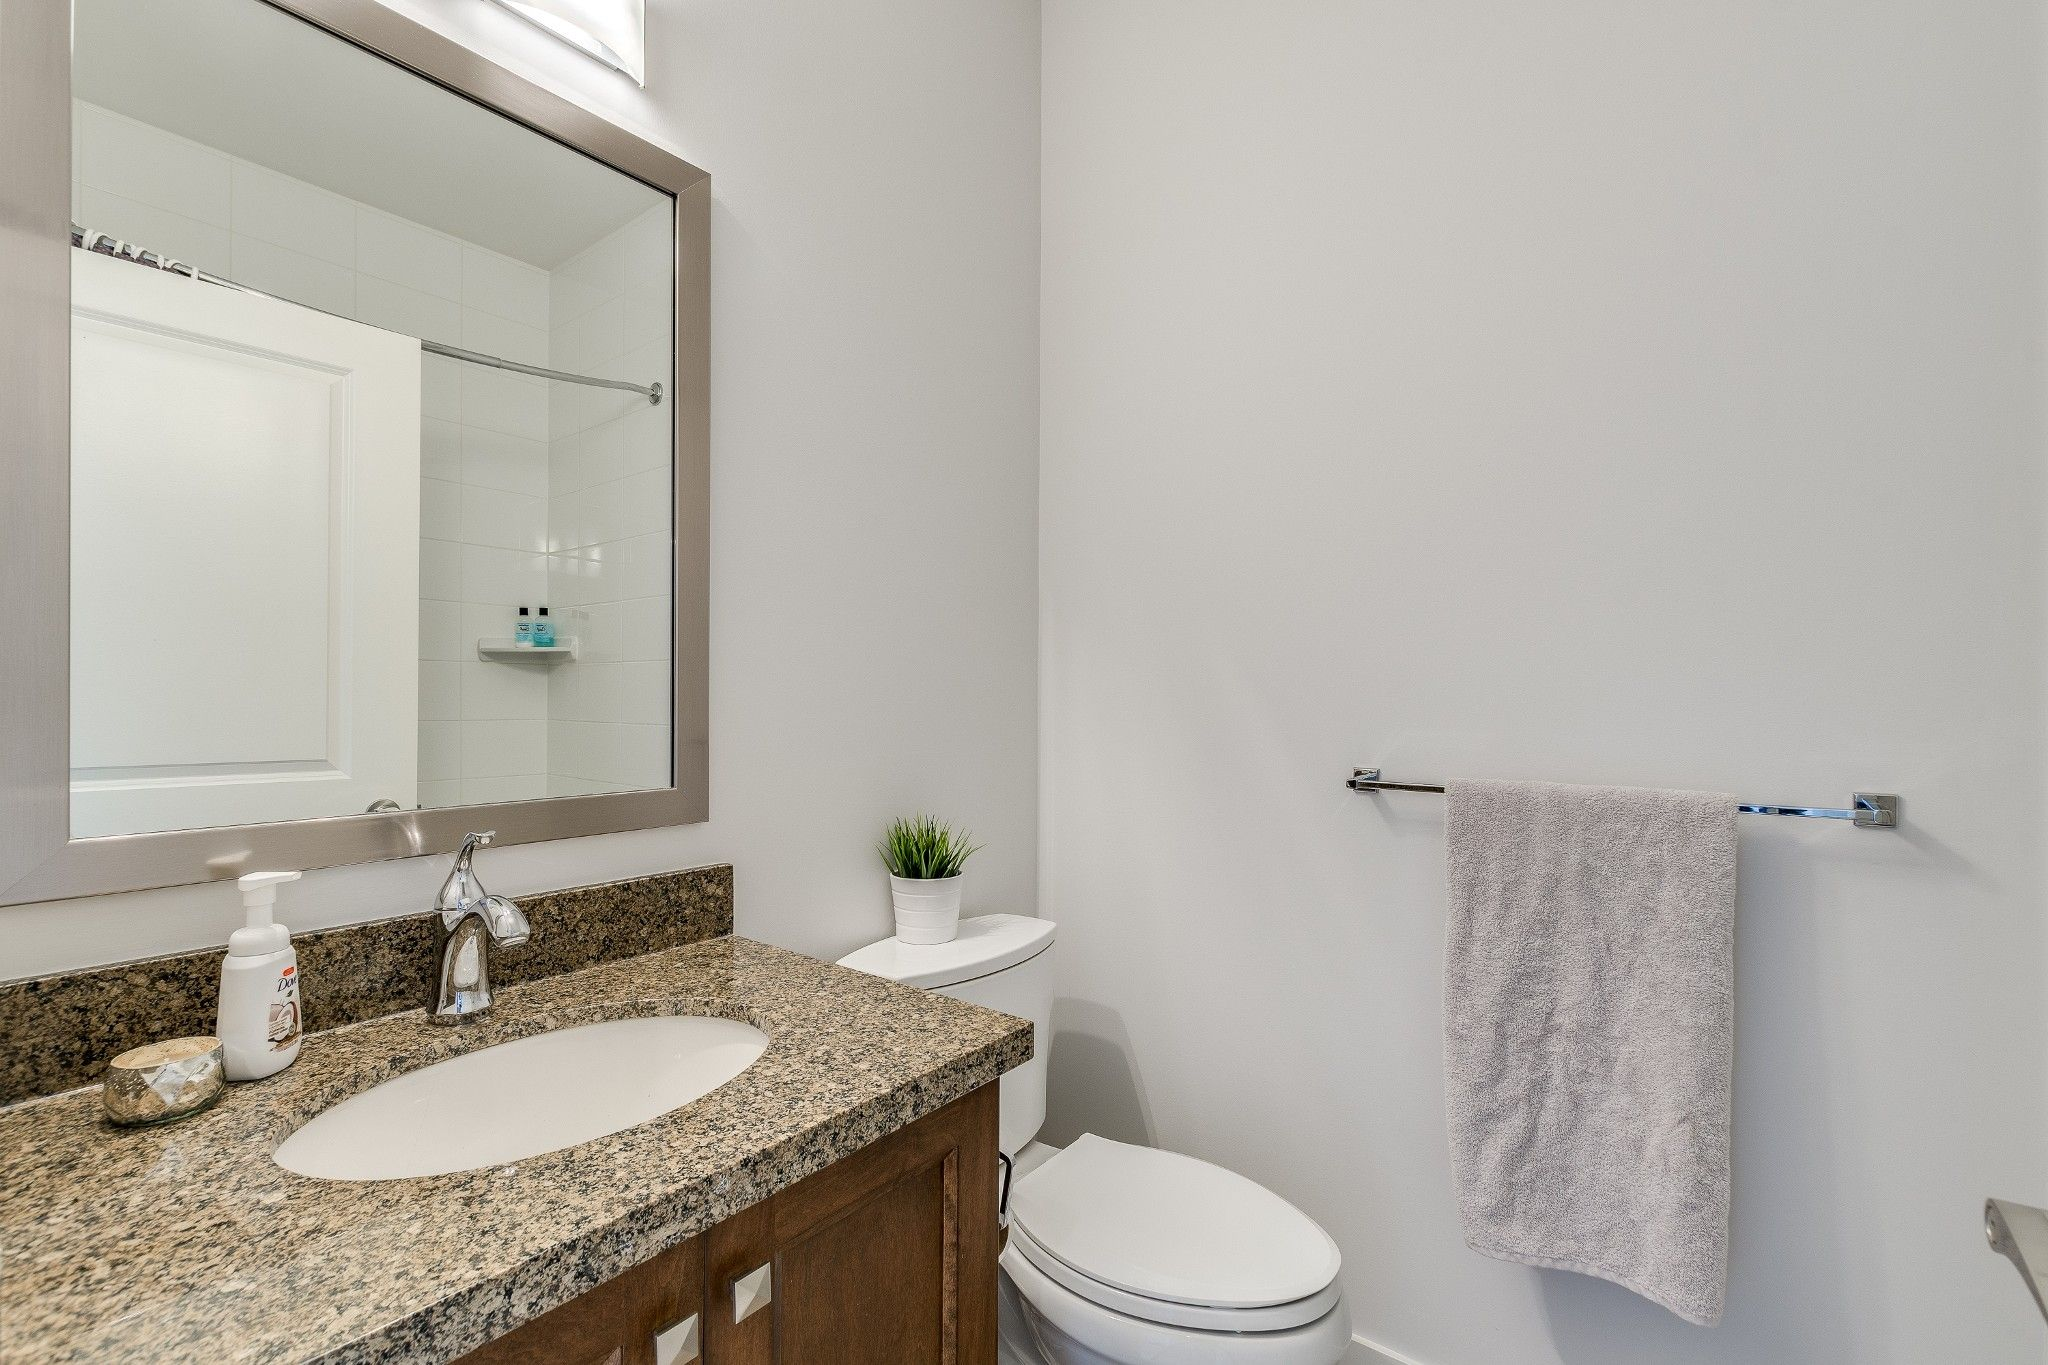 Photo 21: Photos: 24 897 Premier Street in : Lynnmour Townhouse for sale (North Vancouver)